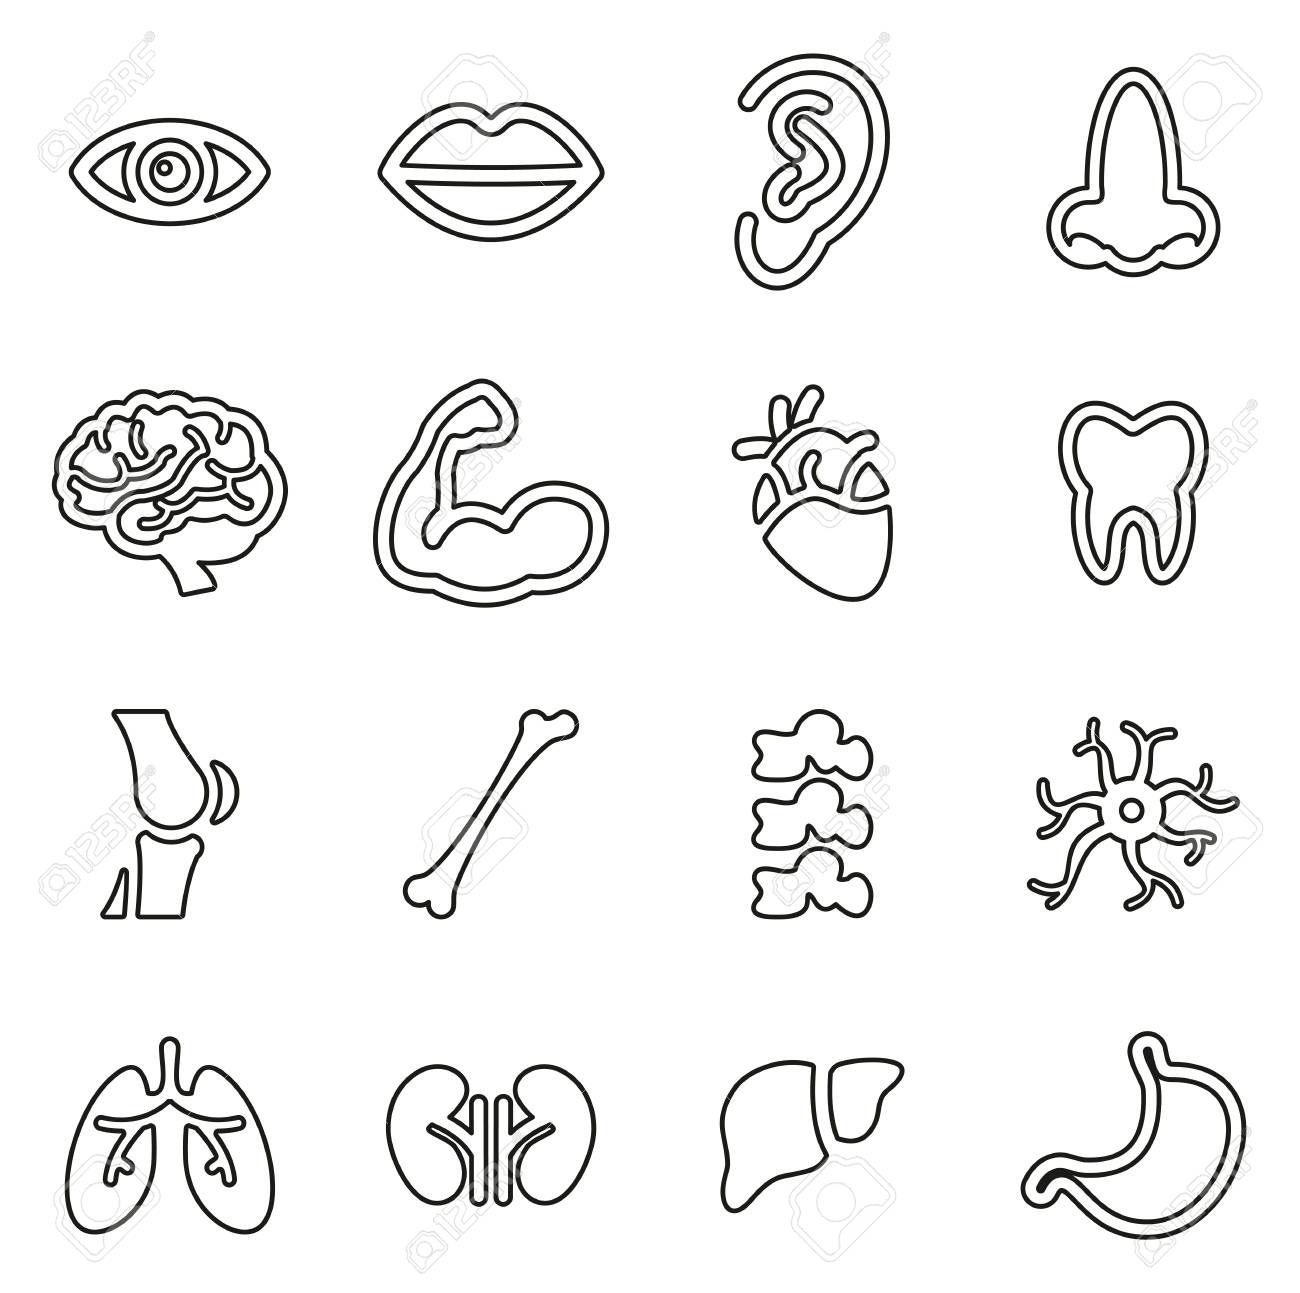 Human Anatomy Or Human Body Parts Icons Thin Line Vector